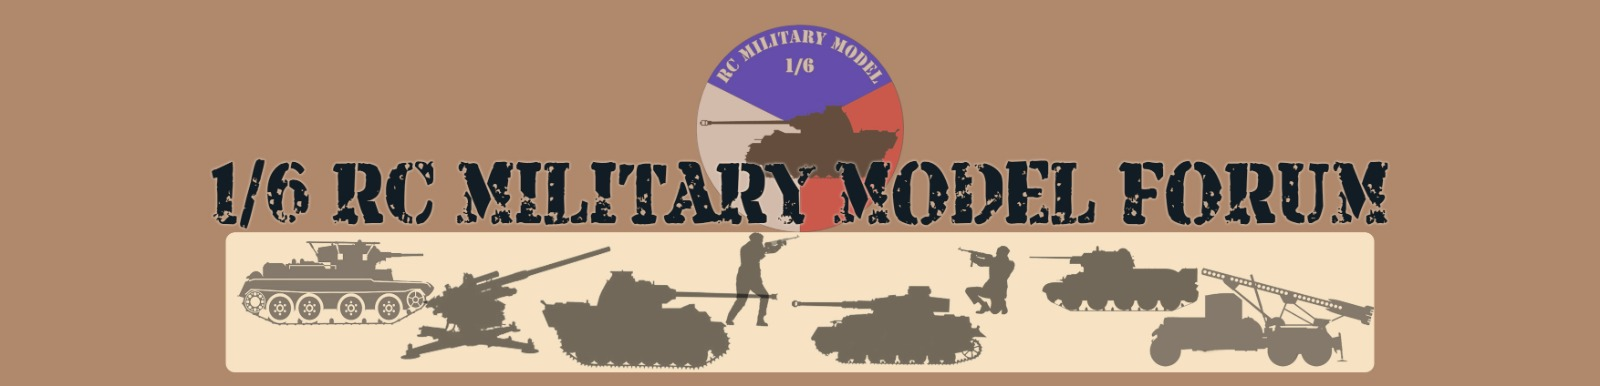 1/6 RC MILITARY MODEL FORUM